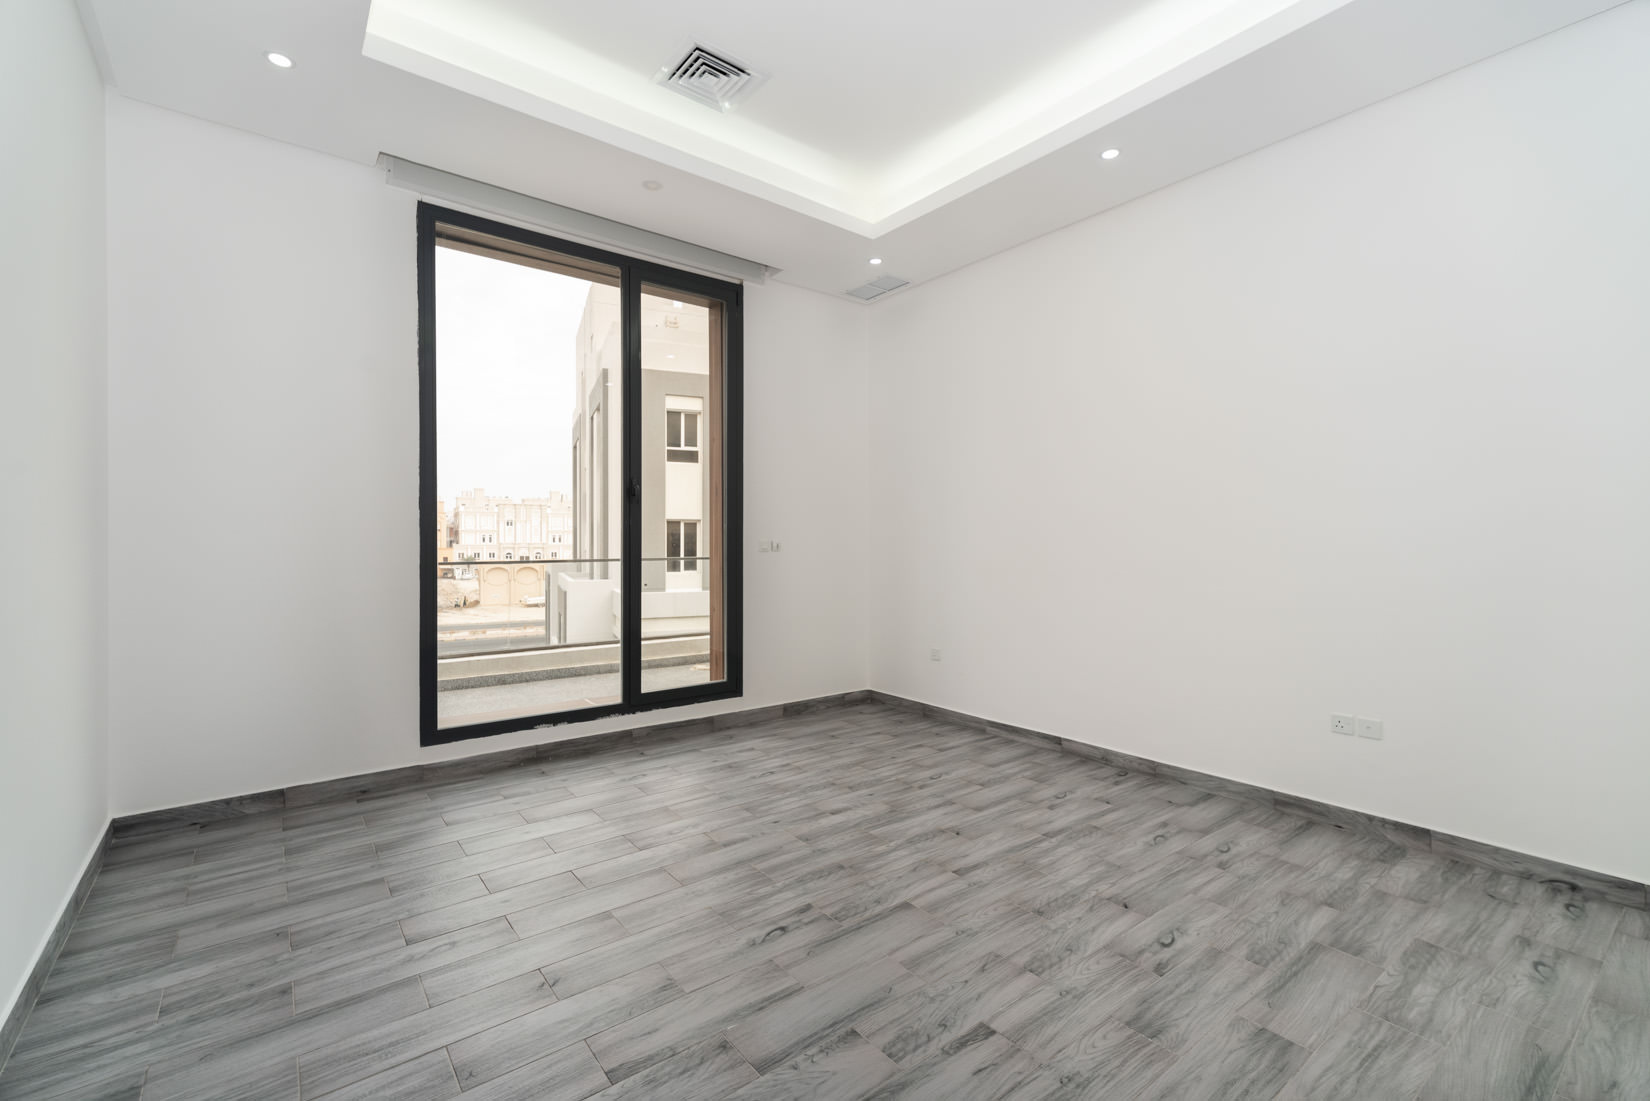 Abu Fatira – large, unfurnished four bedroom floor